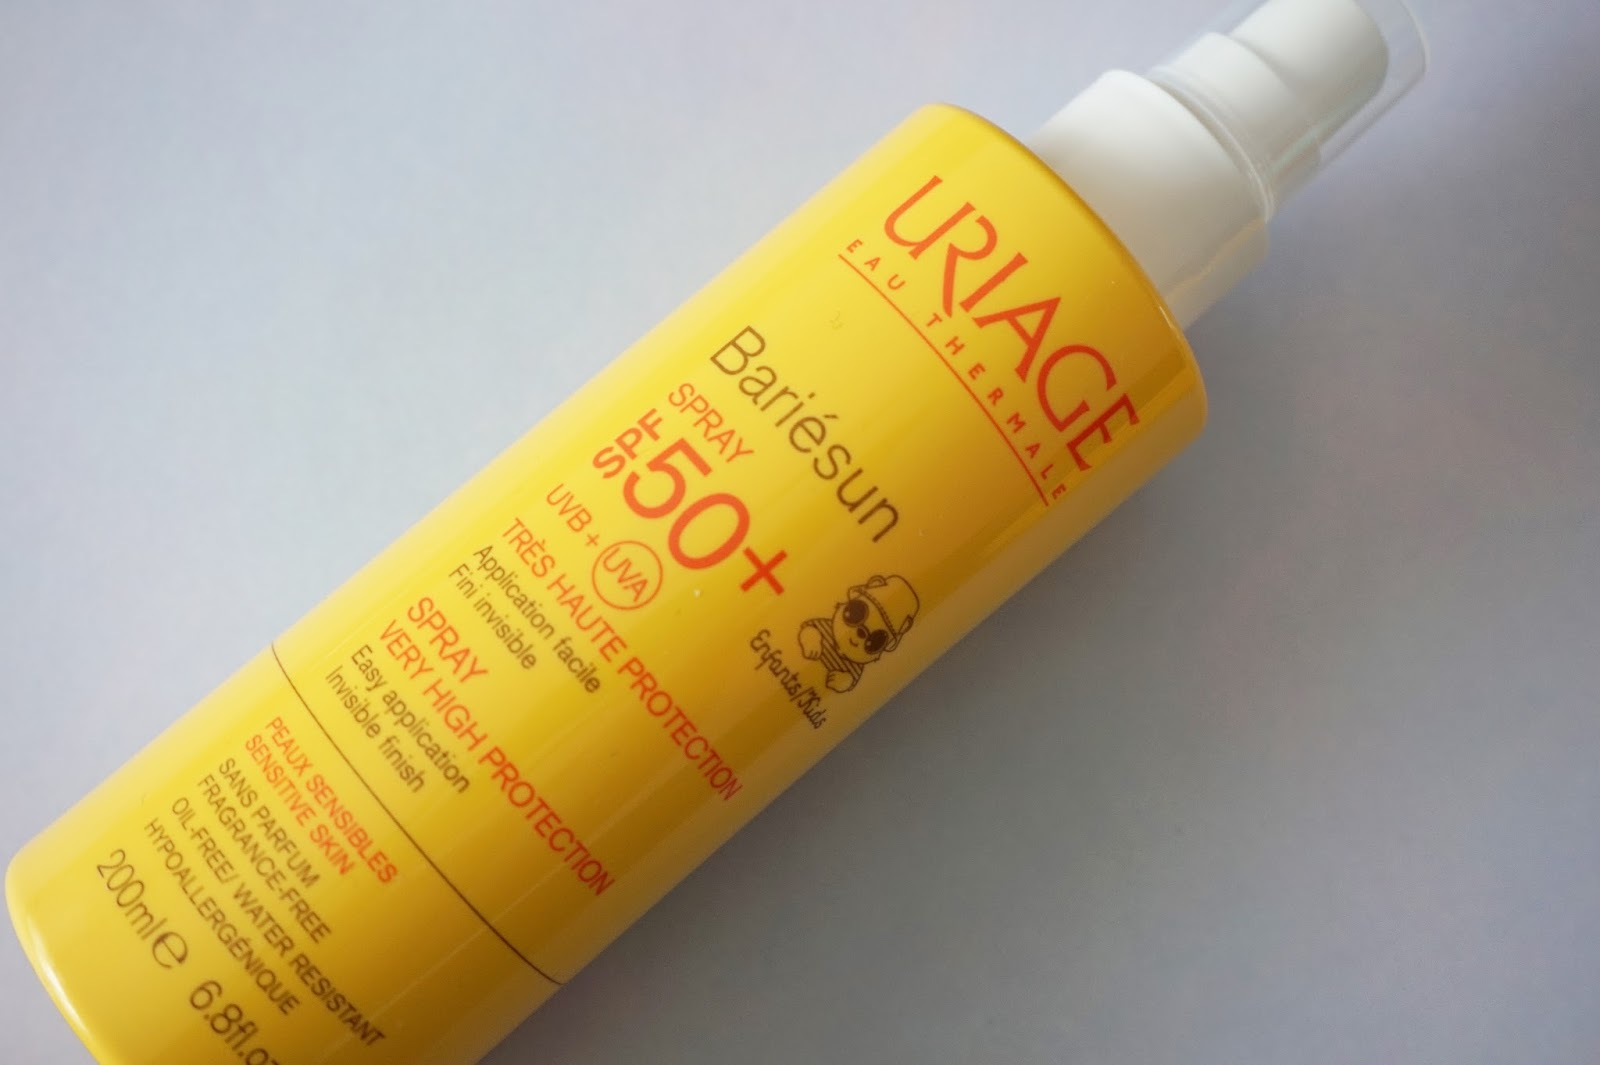 uriage bariesun spray SPF50